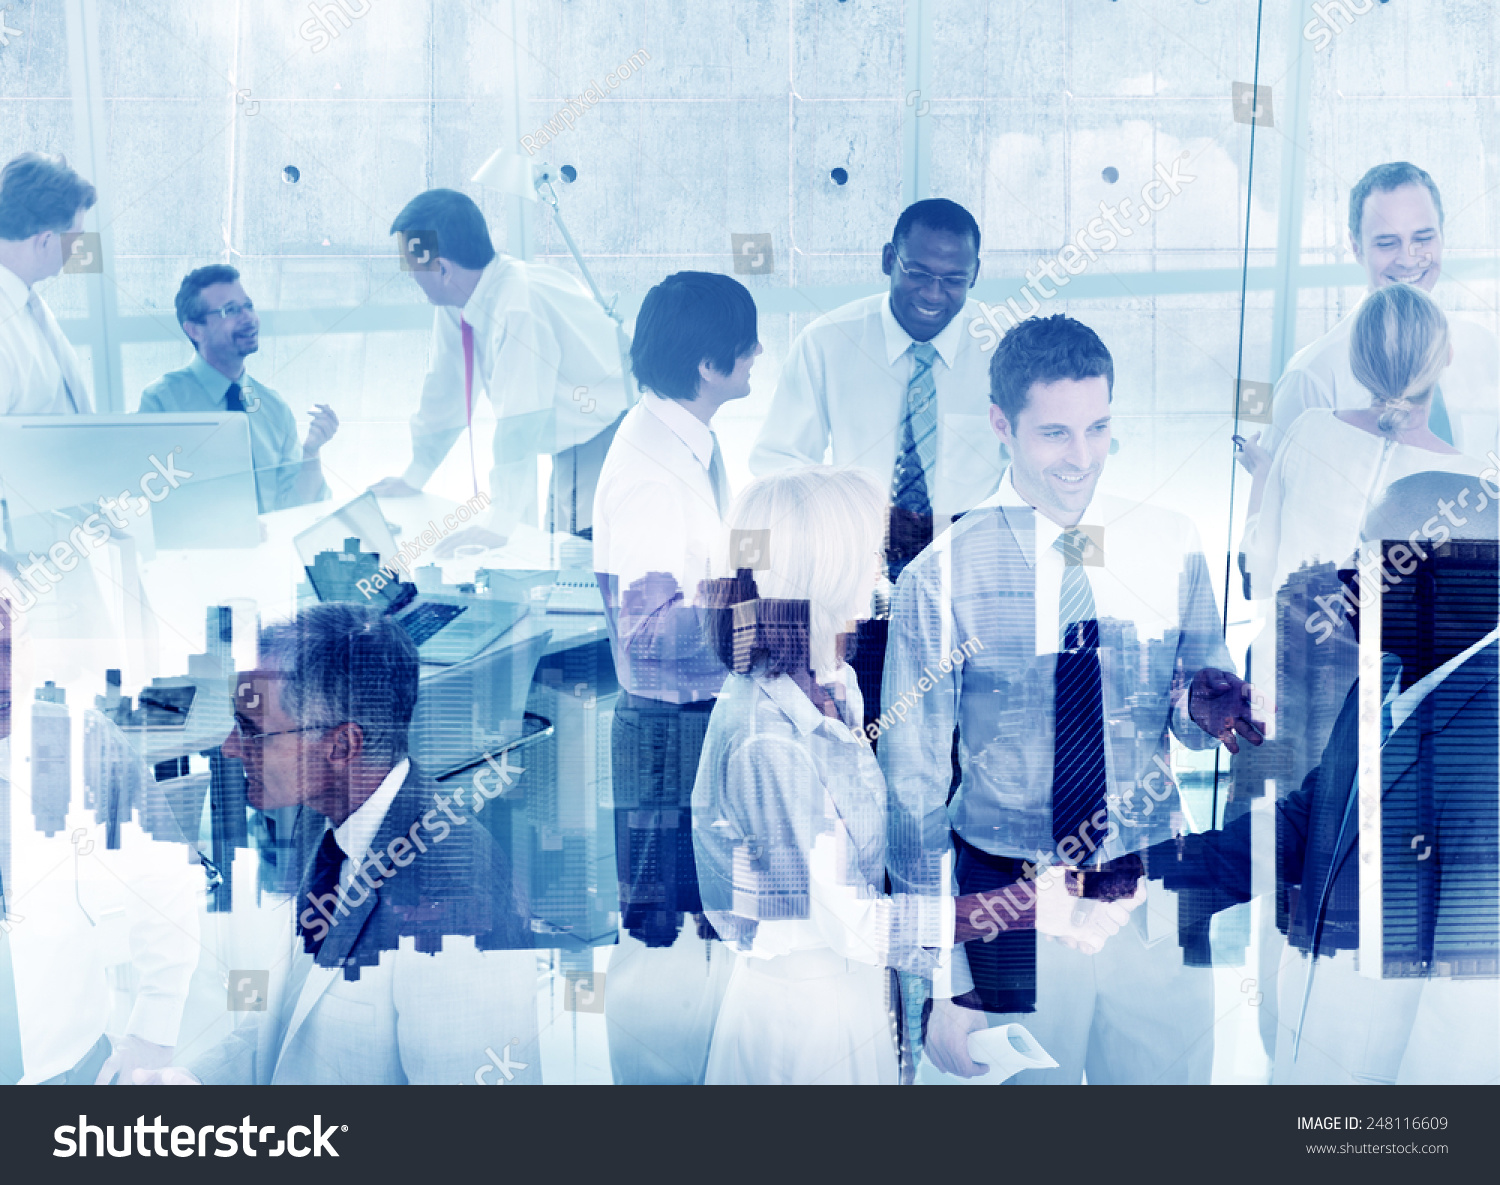 Business People Working Togetherness Teamwork Support Partnership Company #248116609